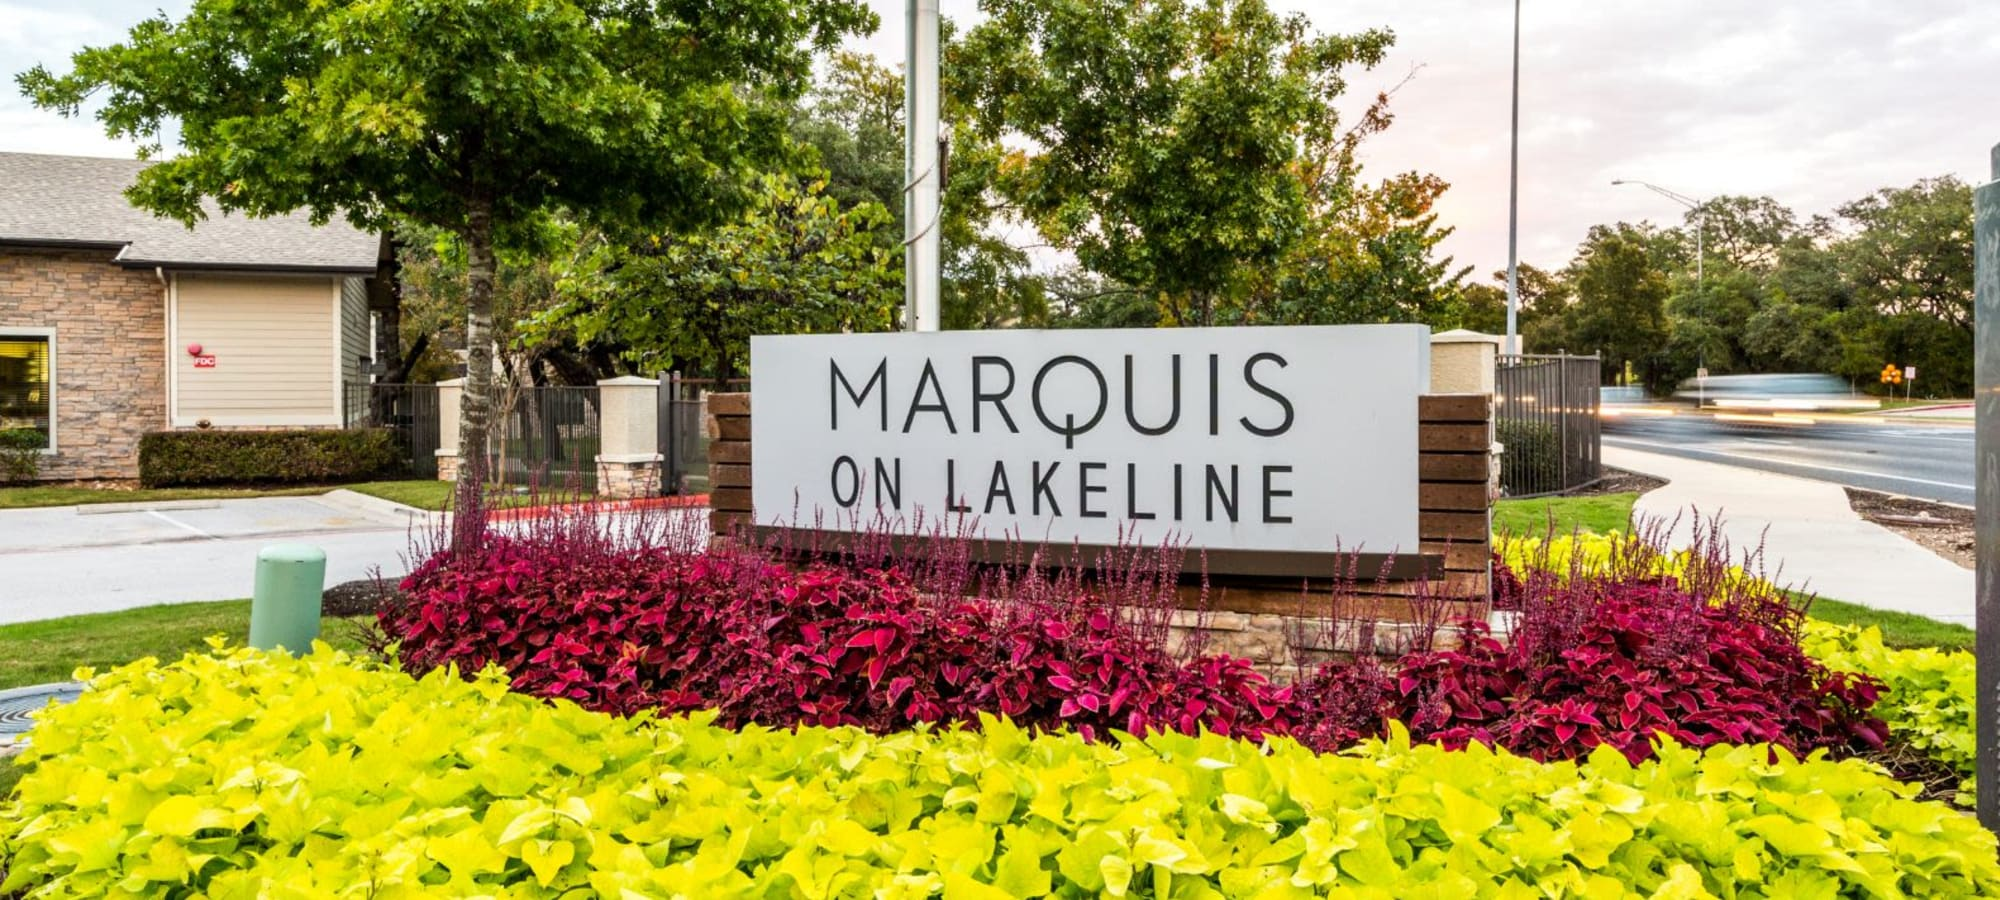 Pet policy at Marquis on Lakeline in Cedar Park, Texas